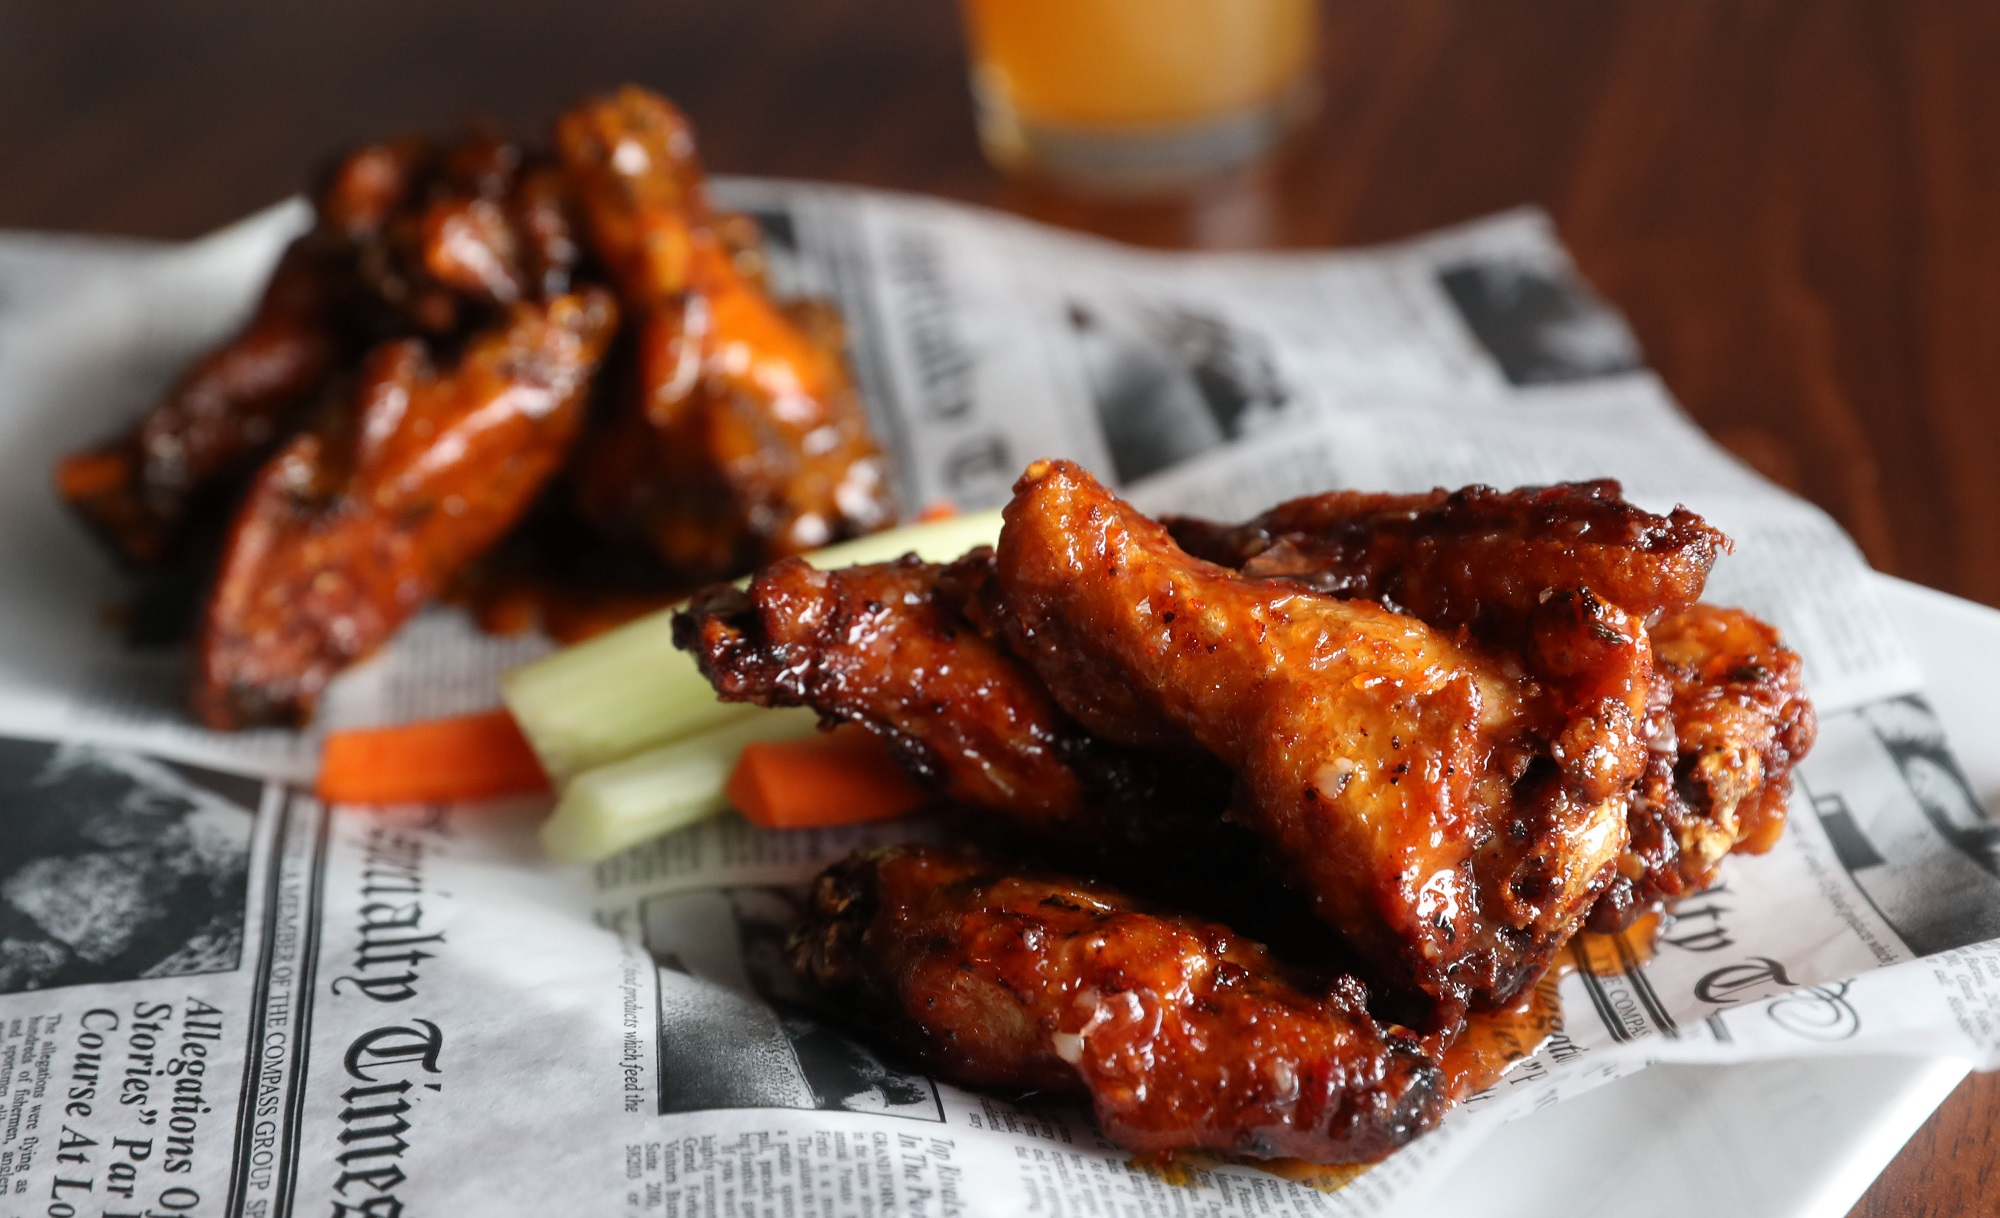 Tony Conrad's Buffalo chicken wings are house rubbed and house smoked at Hilltop. From left are their golden barbecue and sweet chile wings. (Sharon Cantillon/Buffalo News)